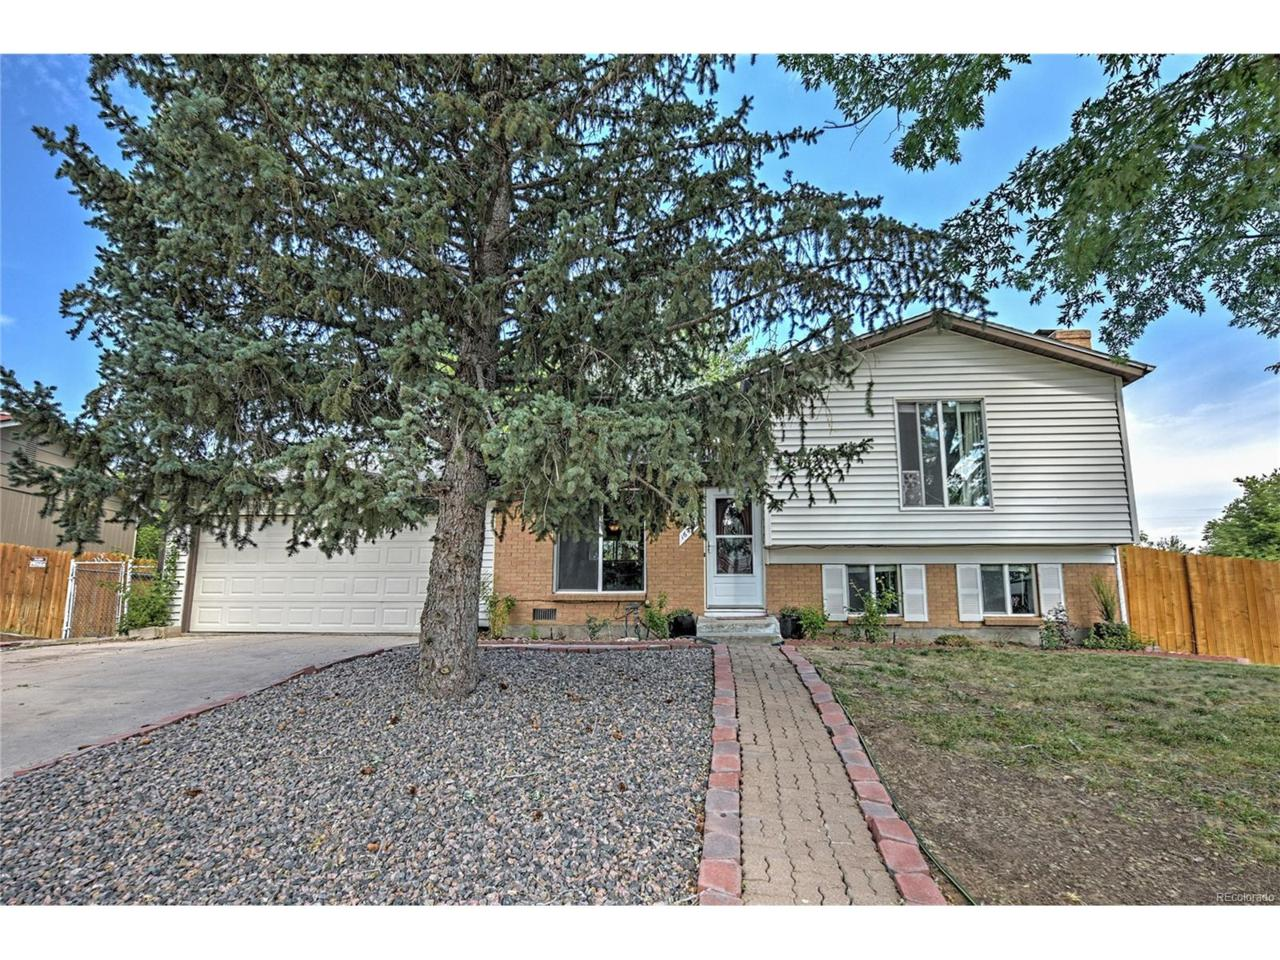 16489 E Evans Avenue, Aurora, CO 80013 (MLS #3444337) :: 8z Real Estate